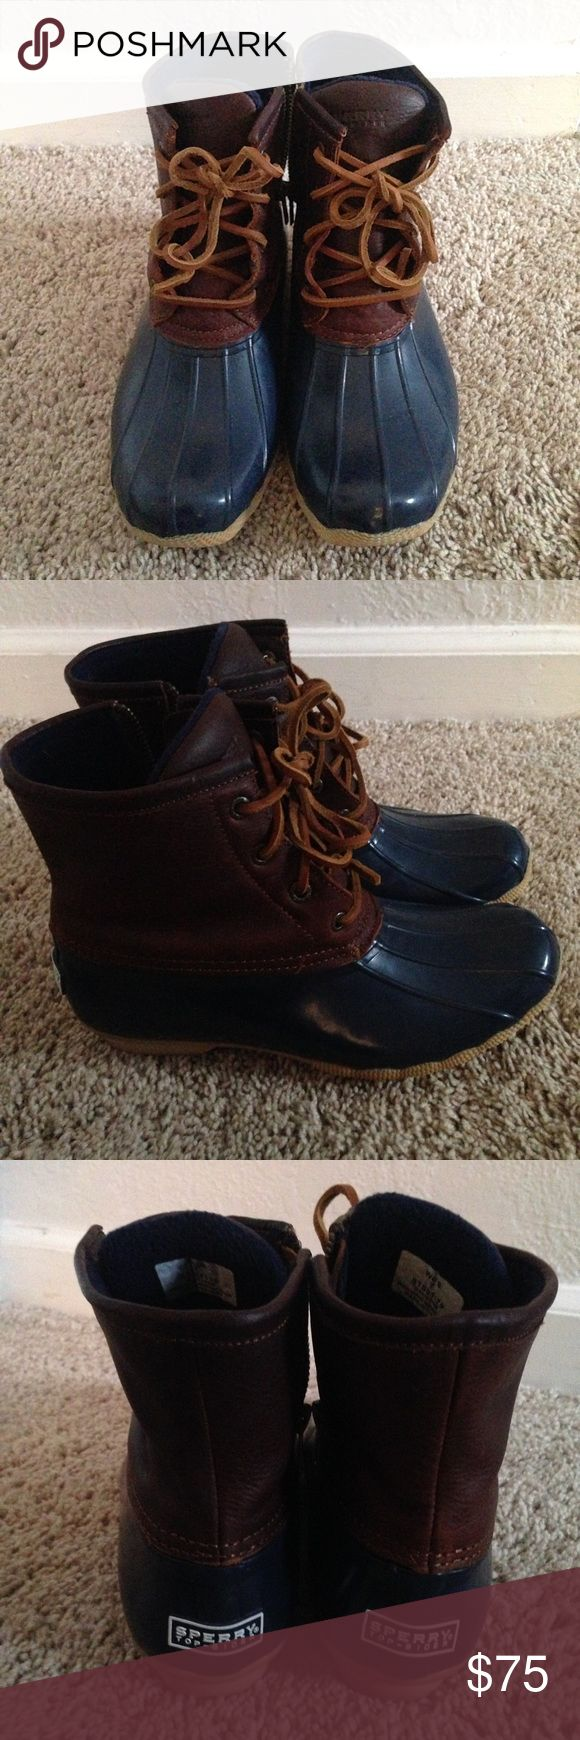 Sperry duck boots 7 Excellent condition. Super comfy and warm. Price firm! Sperry Top-Sider Shoes Winter & Rain Boots